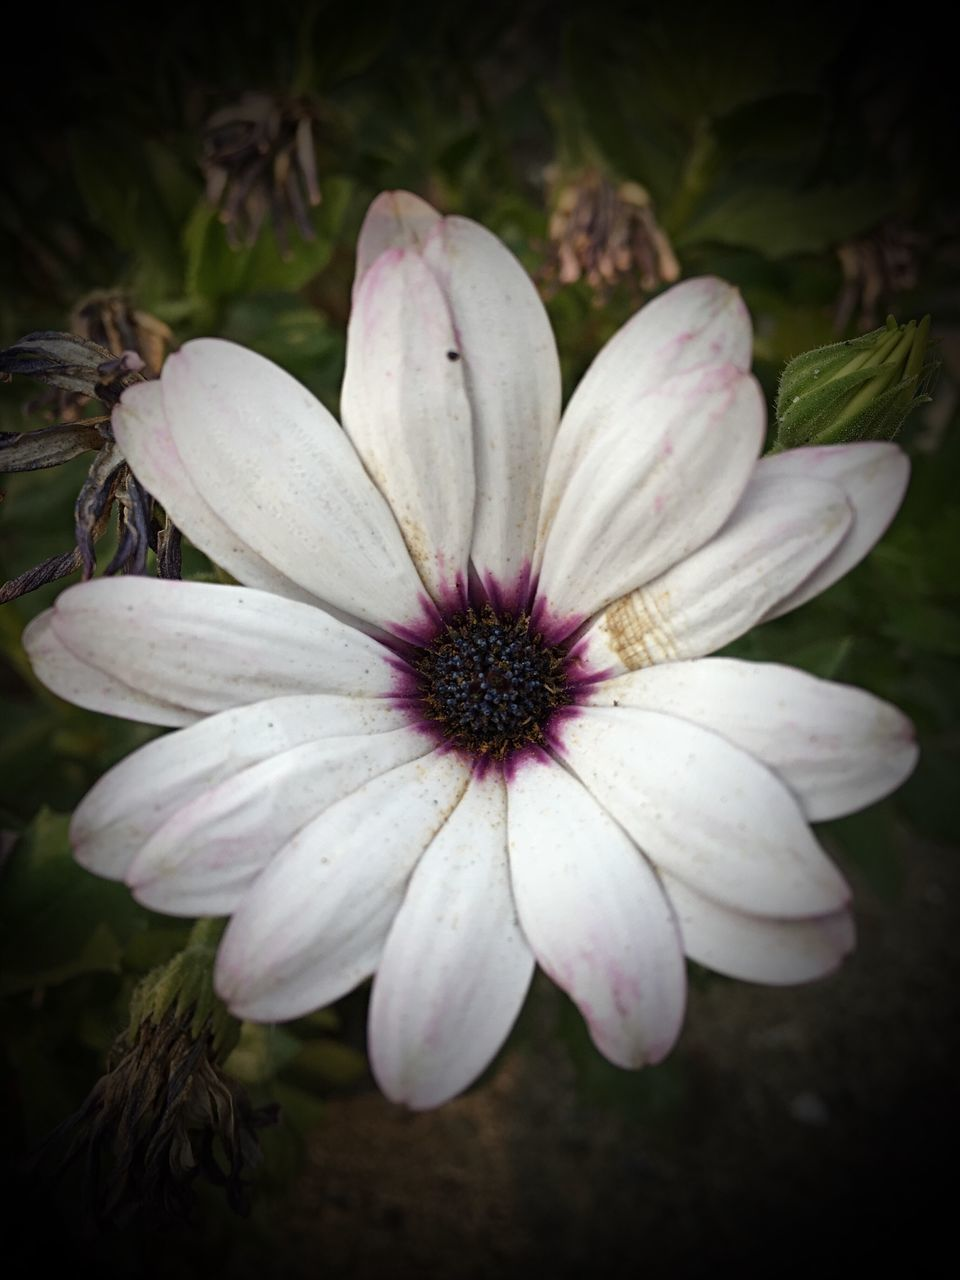 flower, petal, fragility, flower head, freshness, close-up, nature, plant, day, no people, growth, outdoors, beauty in nature, blooming